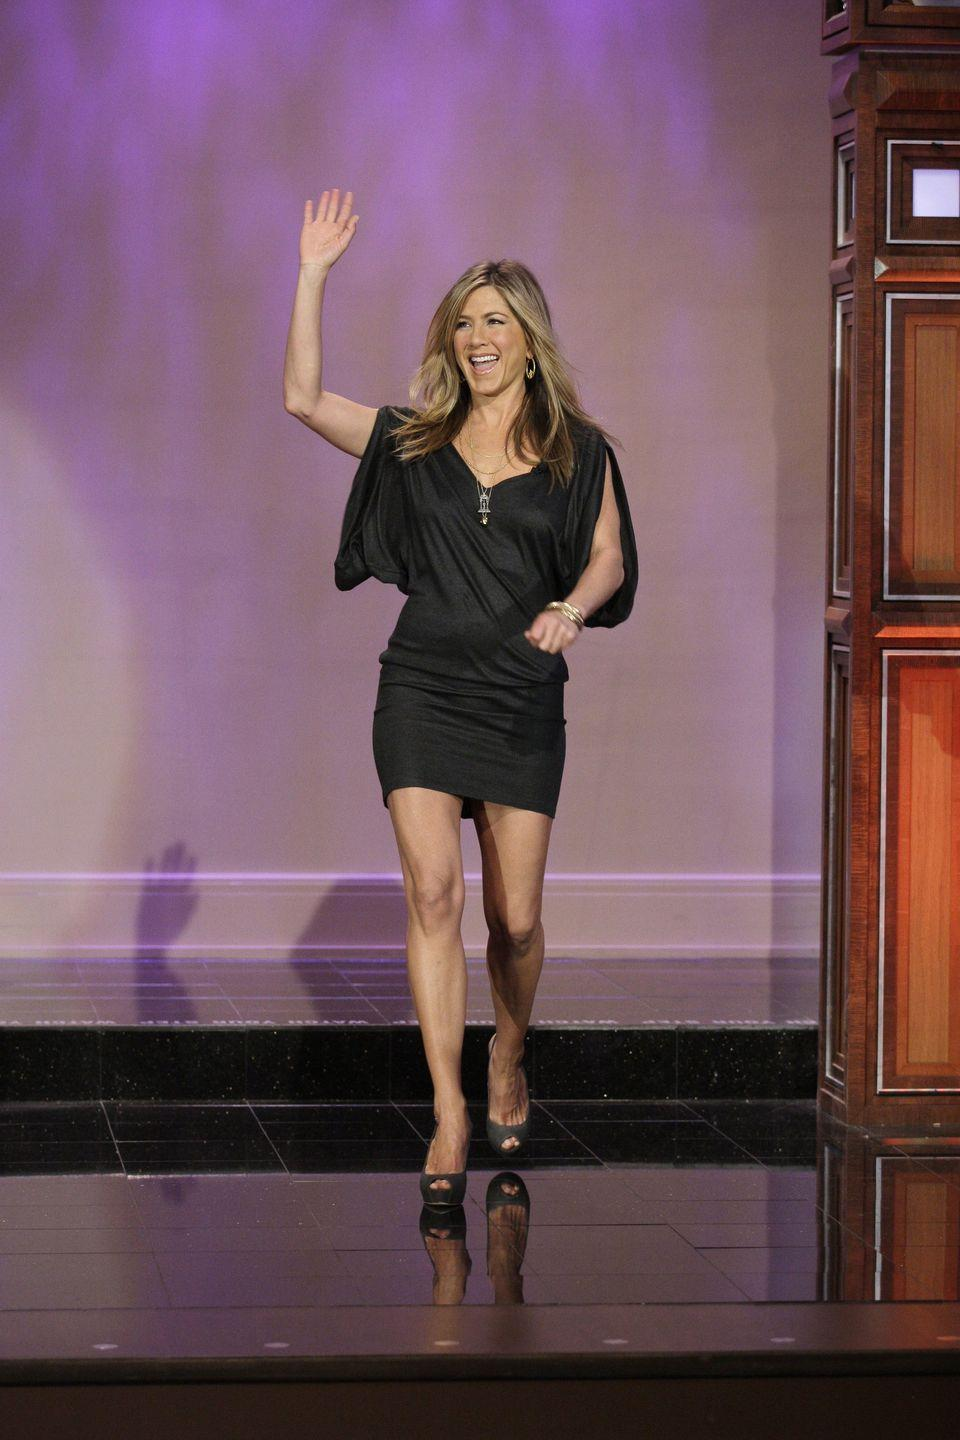 """<p>Aniston loves doing V-ups and using an ab wheel, Azubuike told Women's Health. """"We'll use a sit-up to shock the body occasionally, but it's not a major part of our core regimen,"""" he said.</p>"""